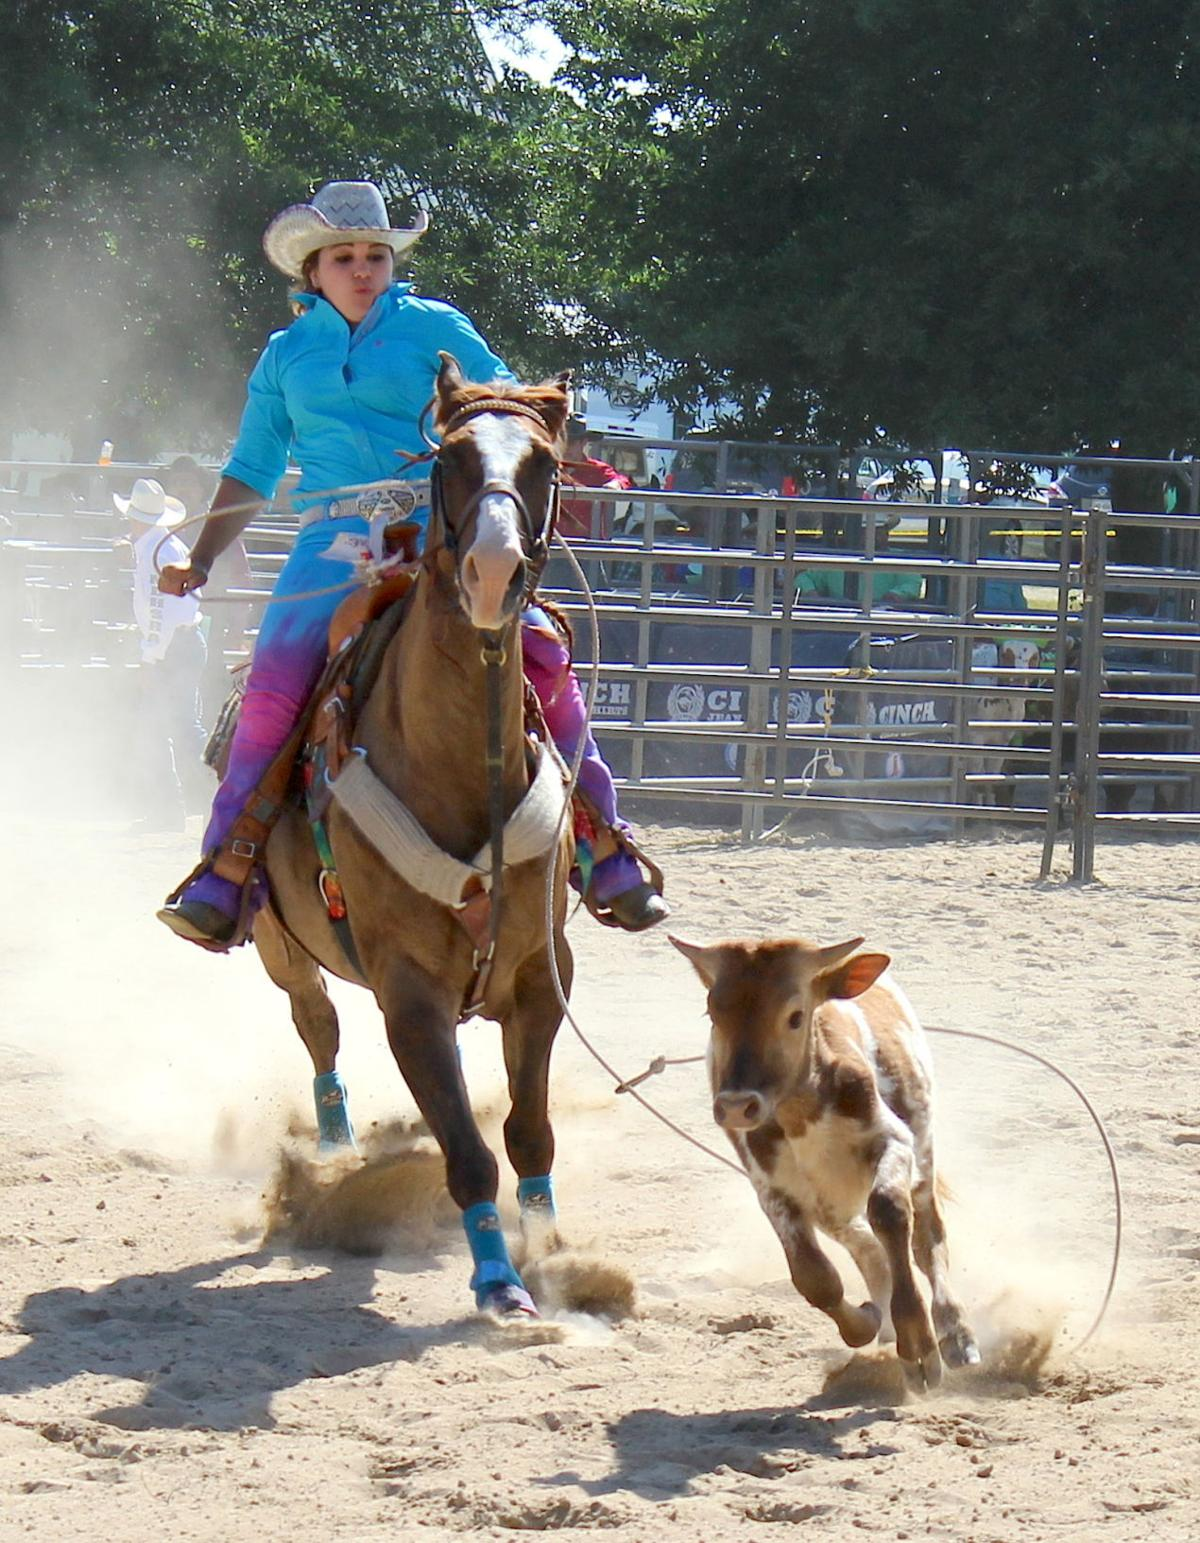 Maryland High School Rodeo Comes To Tuckahoe Queen Annes